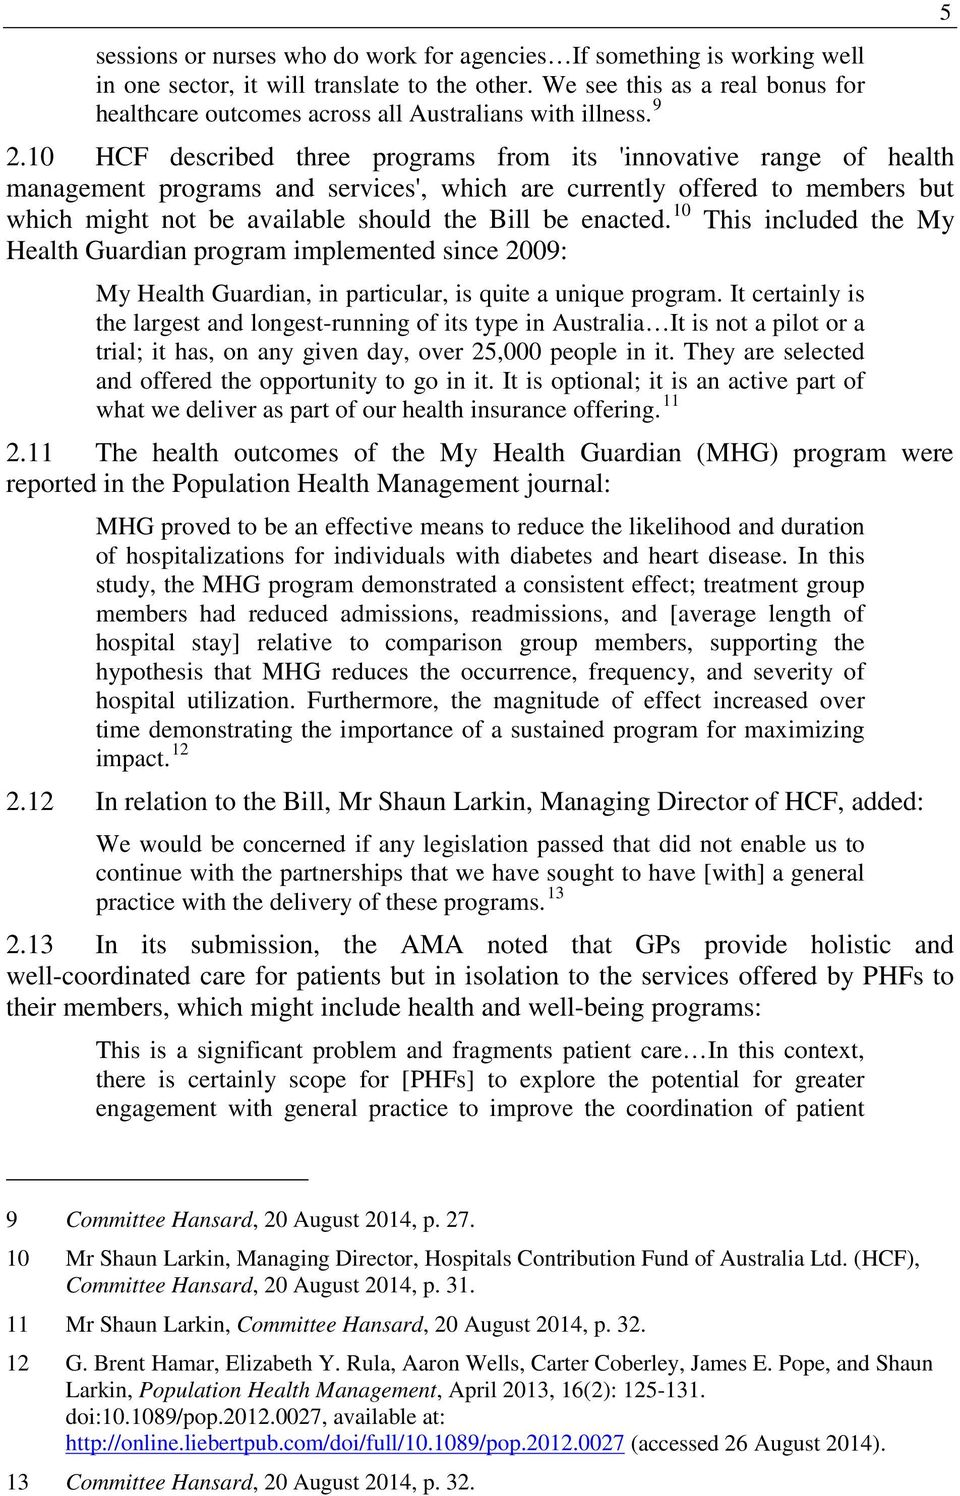 10 HCF described three programs from its 'innovative range of health management programs and services', which are currently offered to members but which might not be available should the Bill be